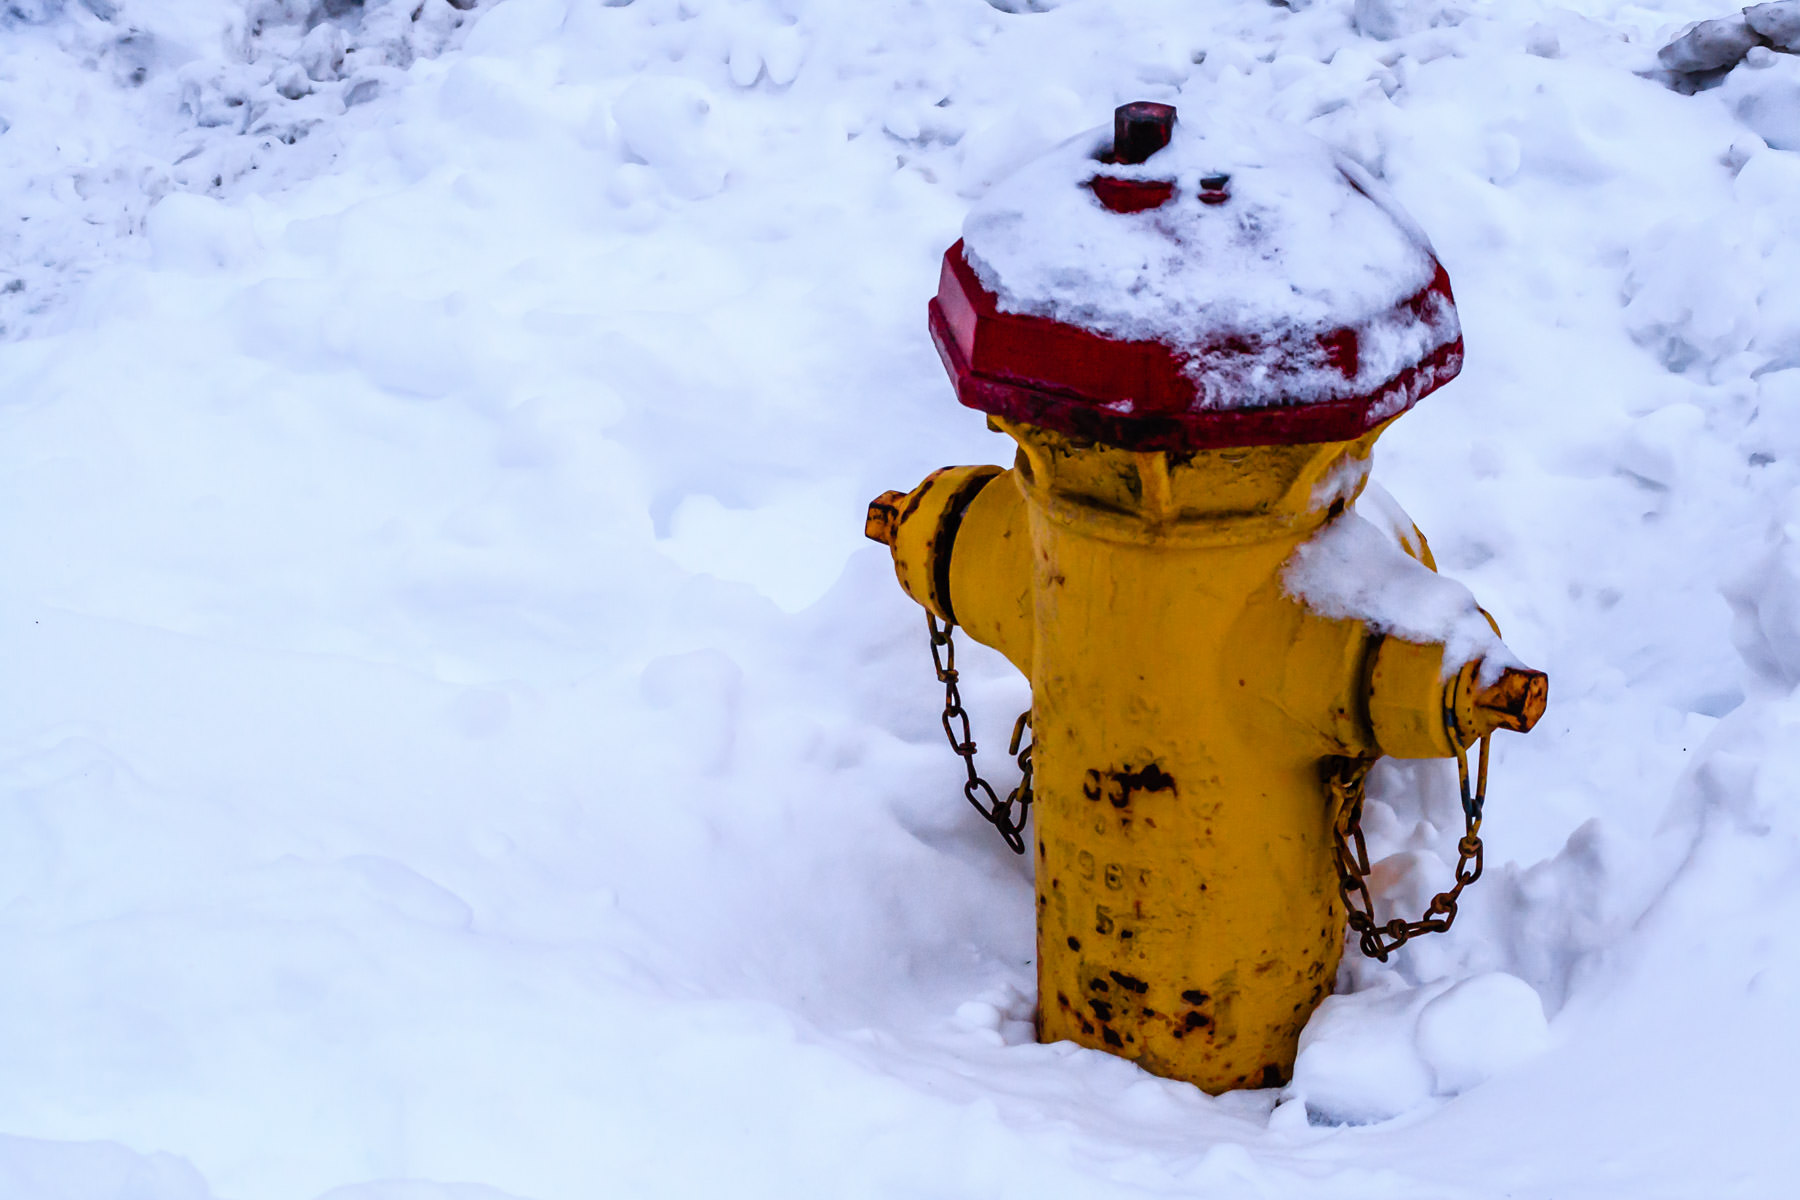 A snow-covered fire hydrant in Downtown Salt Lake City, Utah.